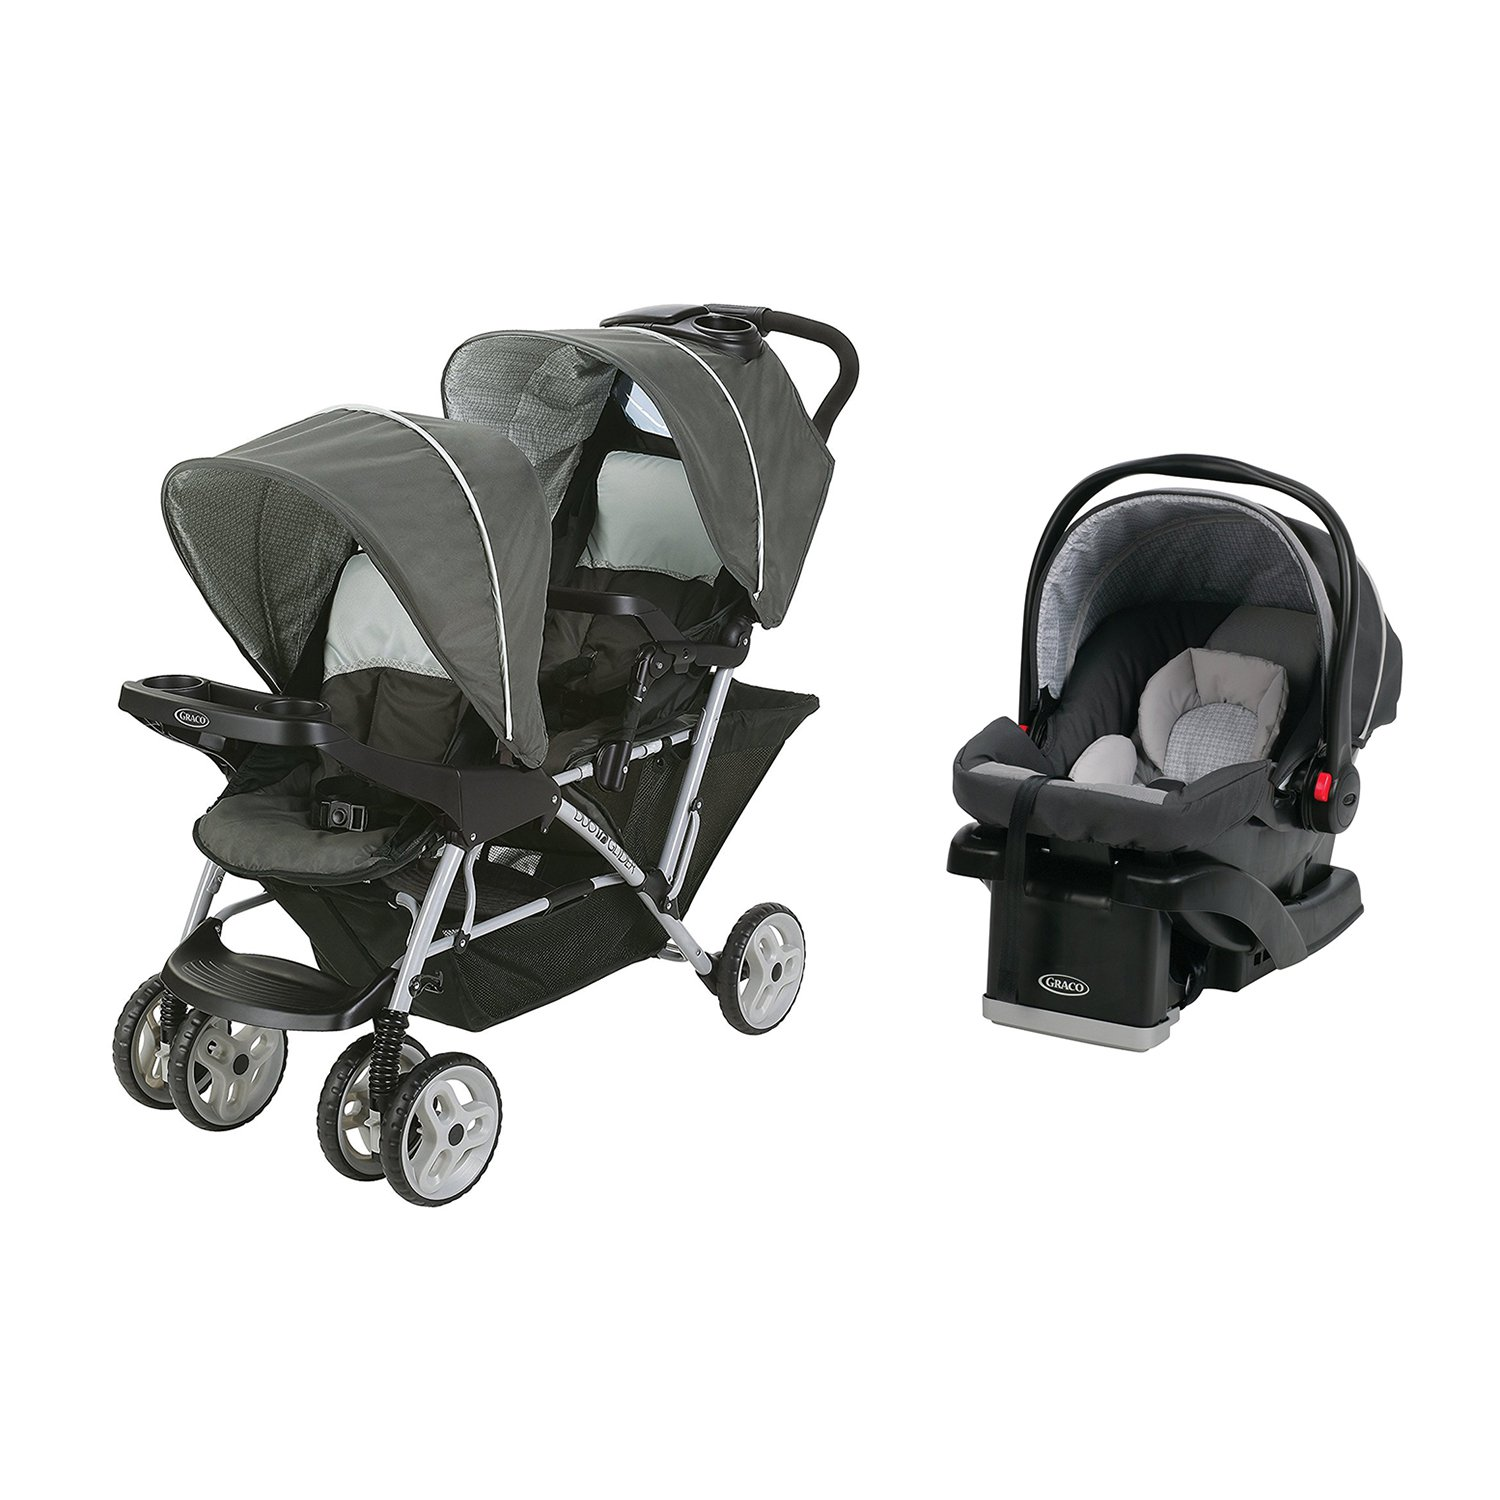 Graco DuoGlider Click Double Stroller + Infant Car Seat Travel System | Glacier by Graco